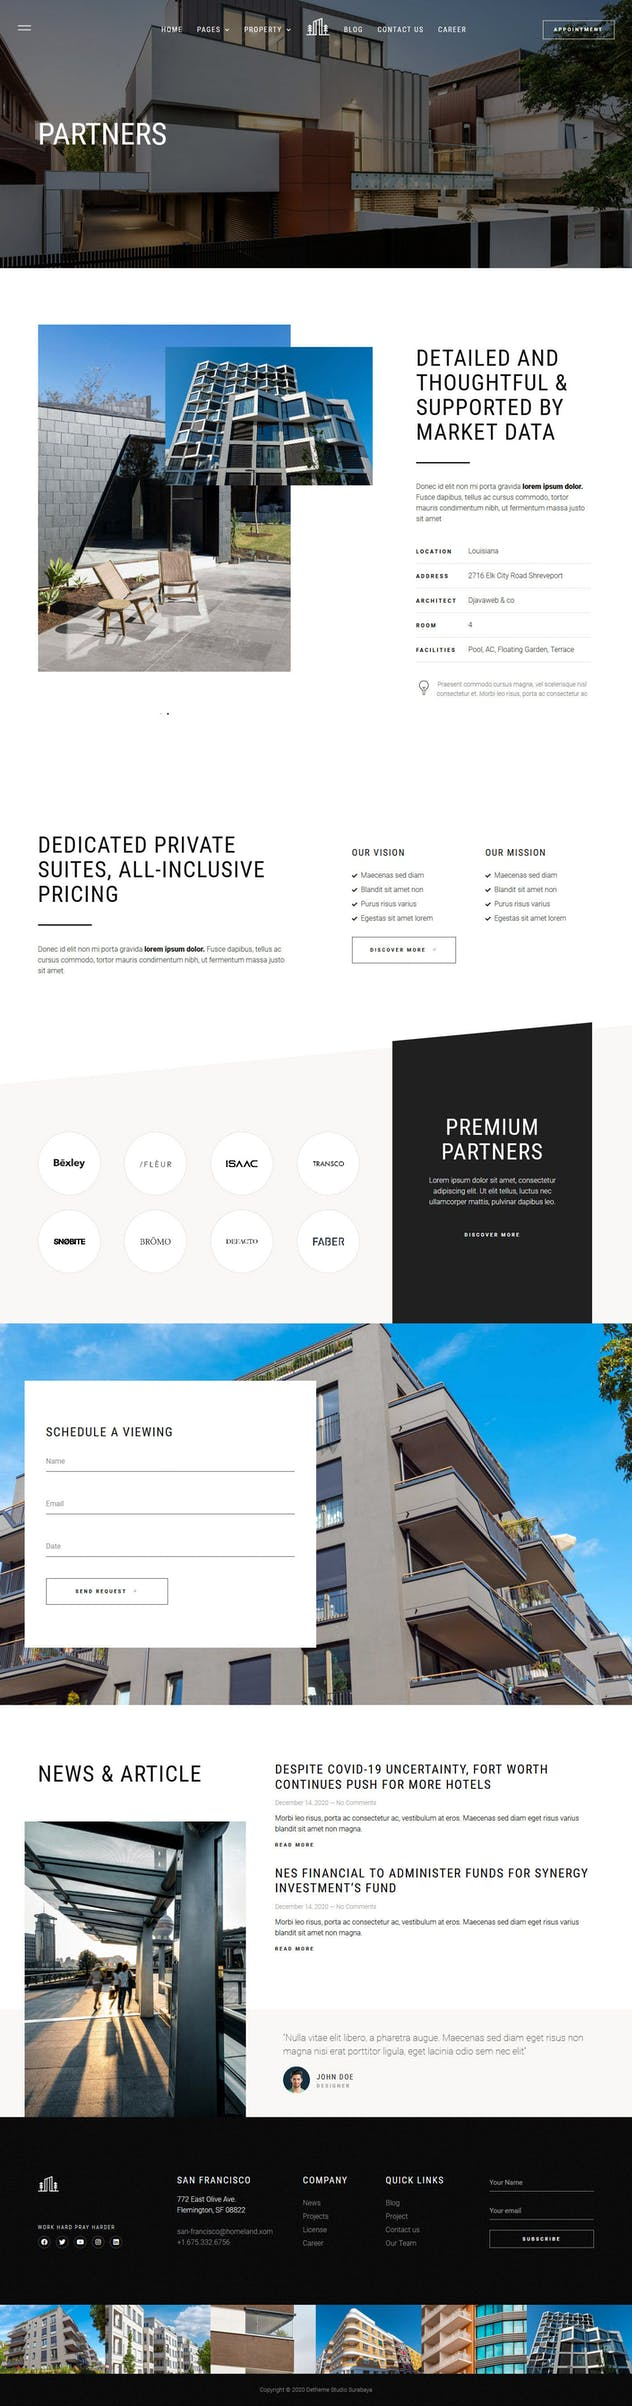 Homeland — Real Estate & Property Elementor Template Kit - product preview 12